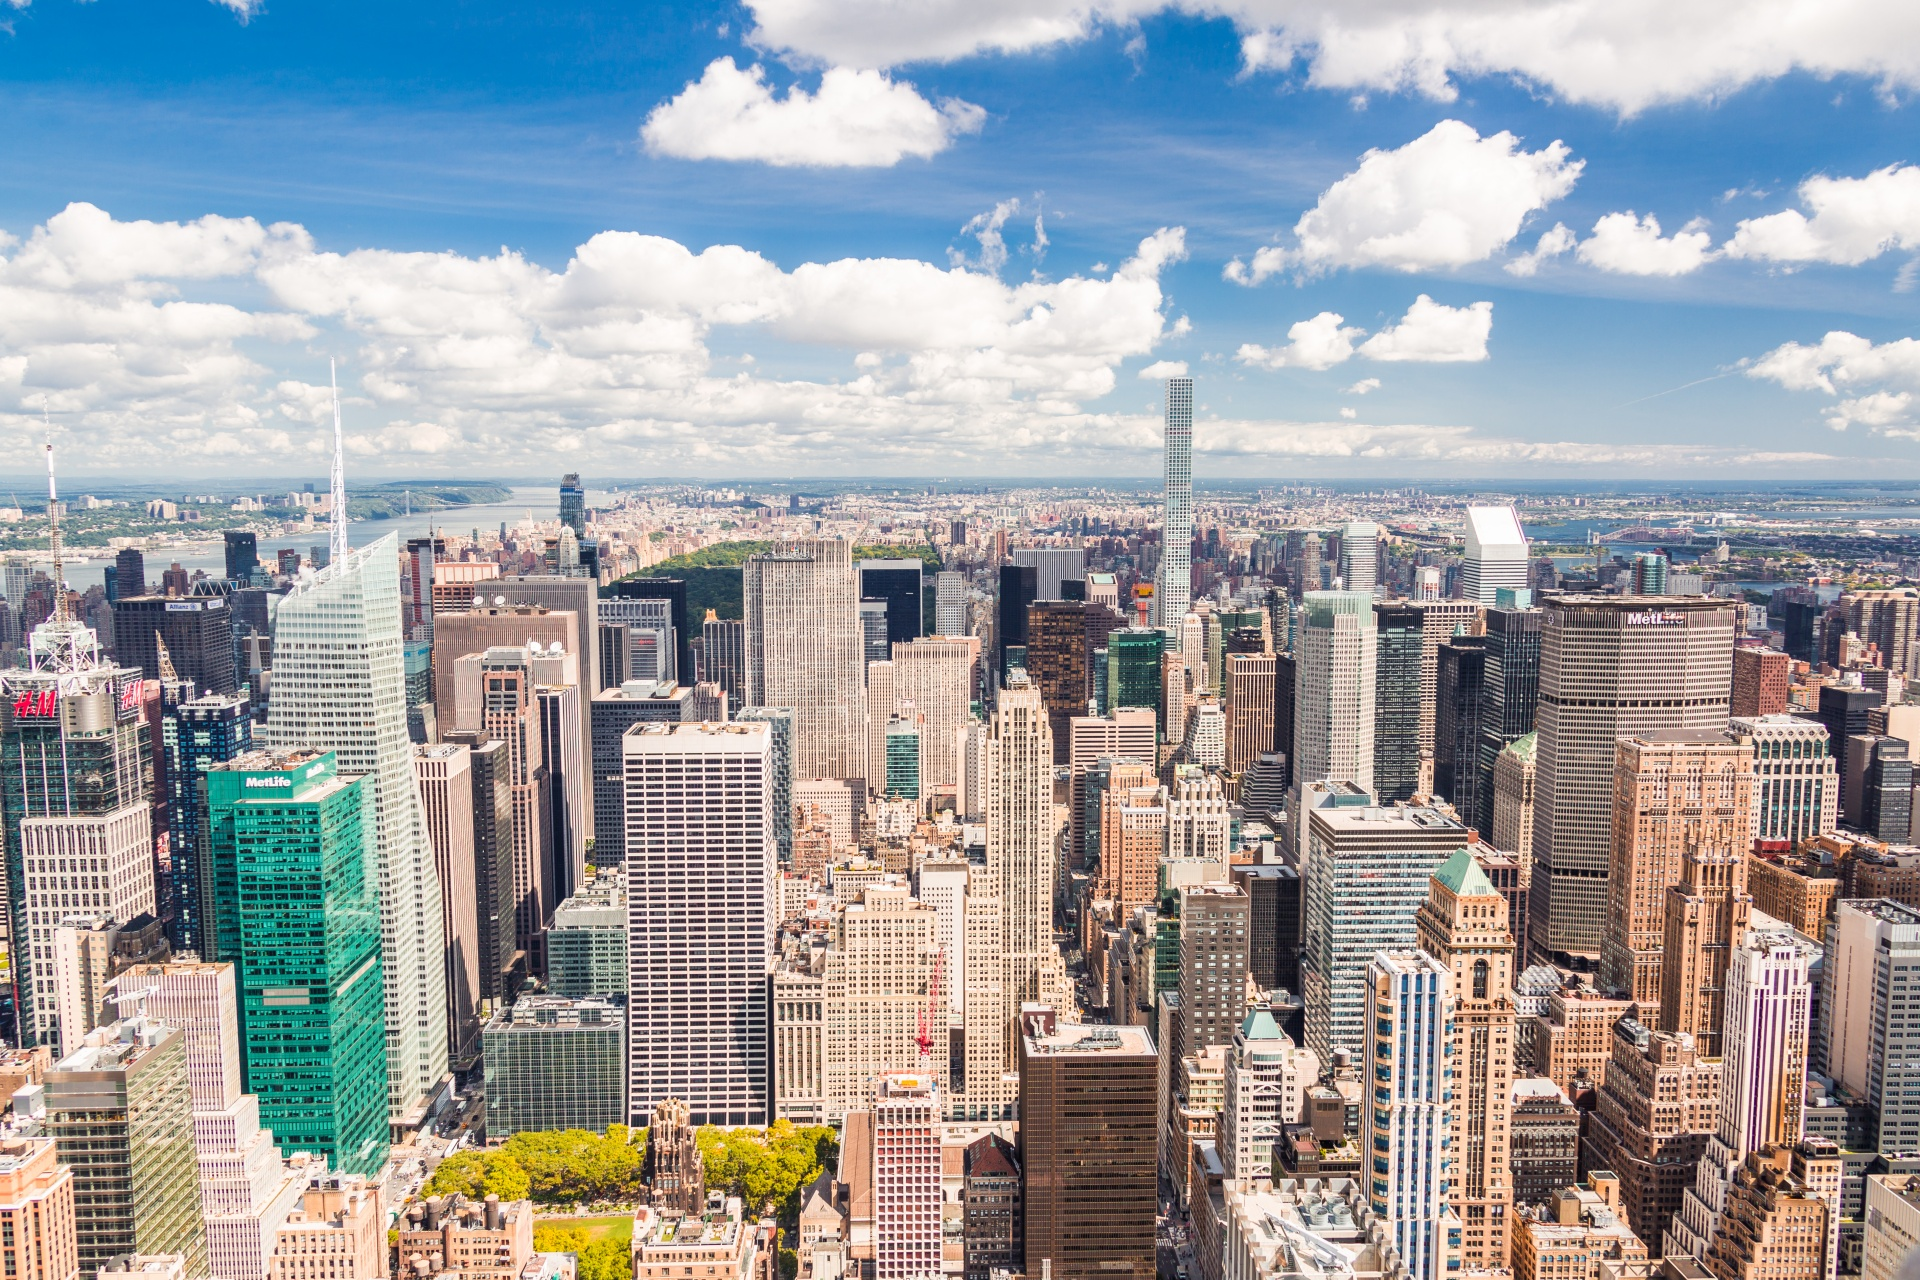 New York City View Free Stock Photo - Public Domain Pictures